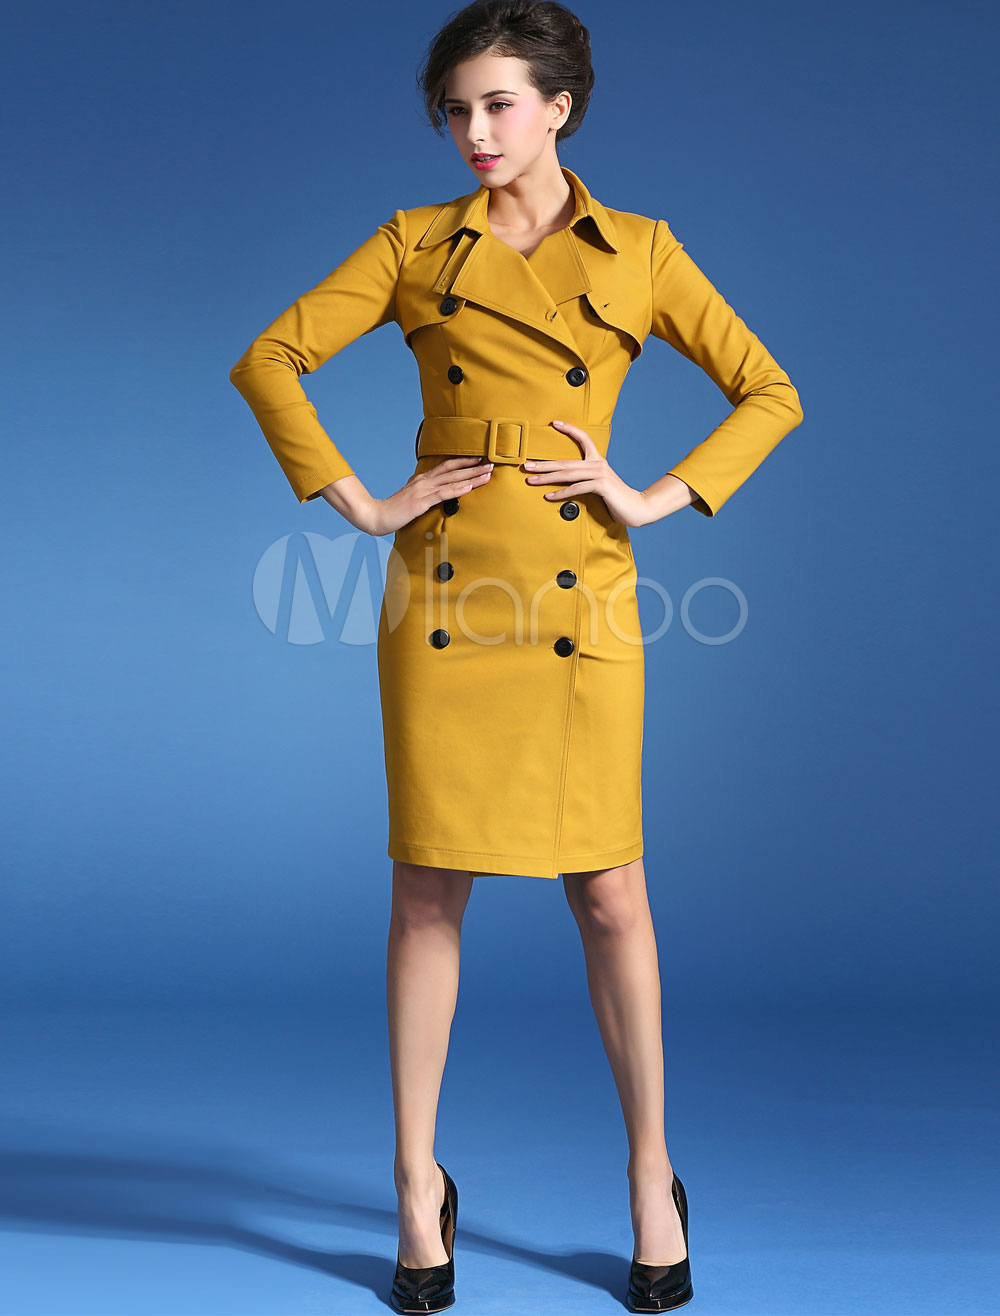 Yellow Double-Breasted Brocade Party Dress for Women Cheap clothes, free shipping worldwide